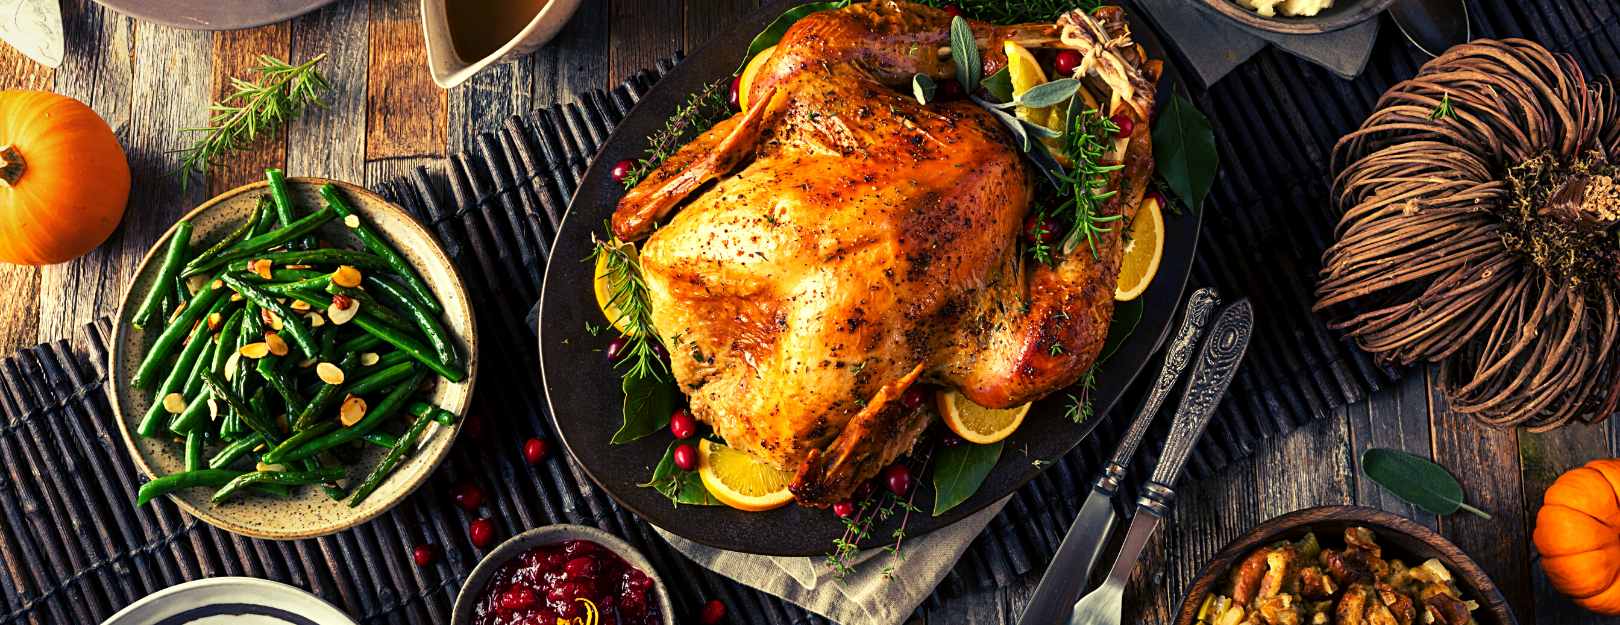 What wine pairs well with turkey